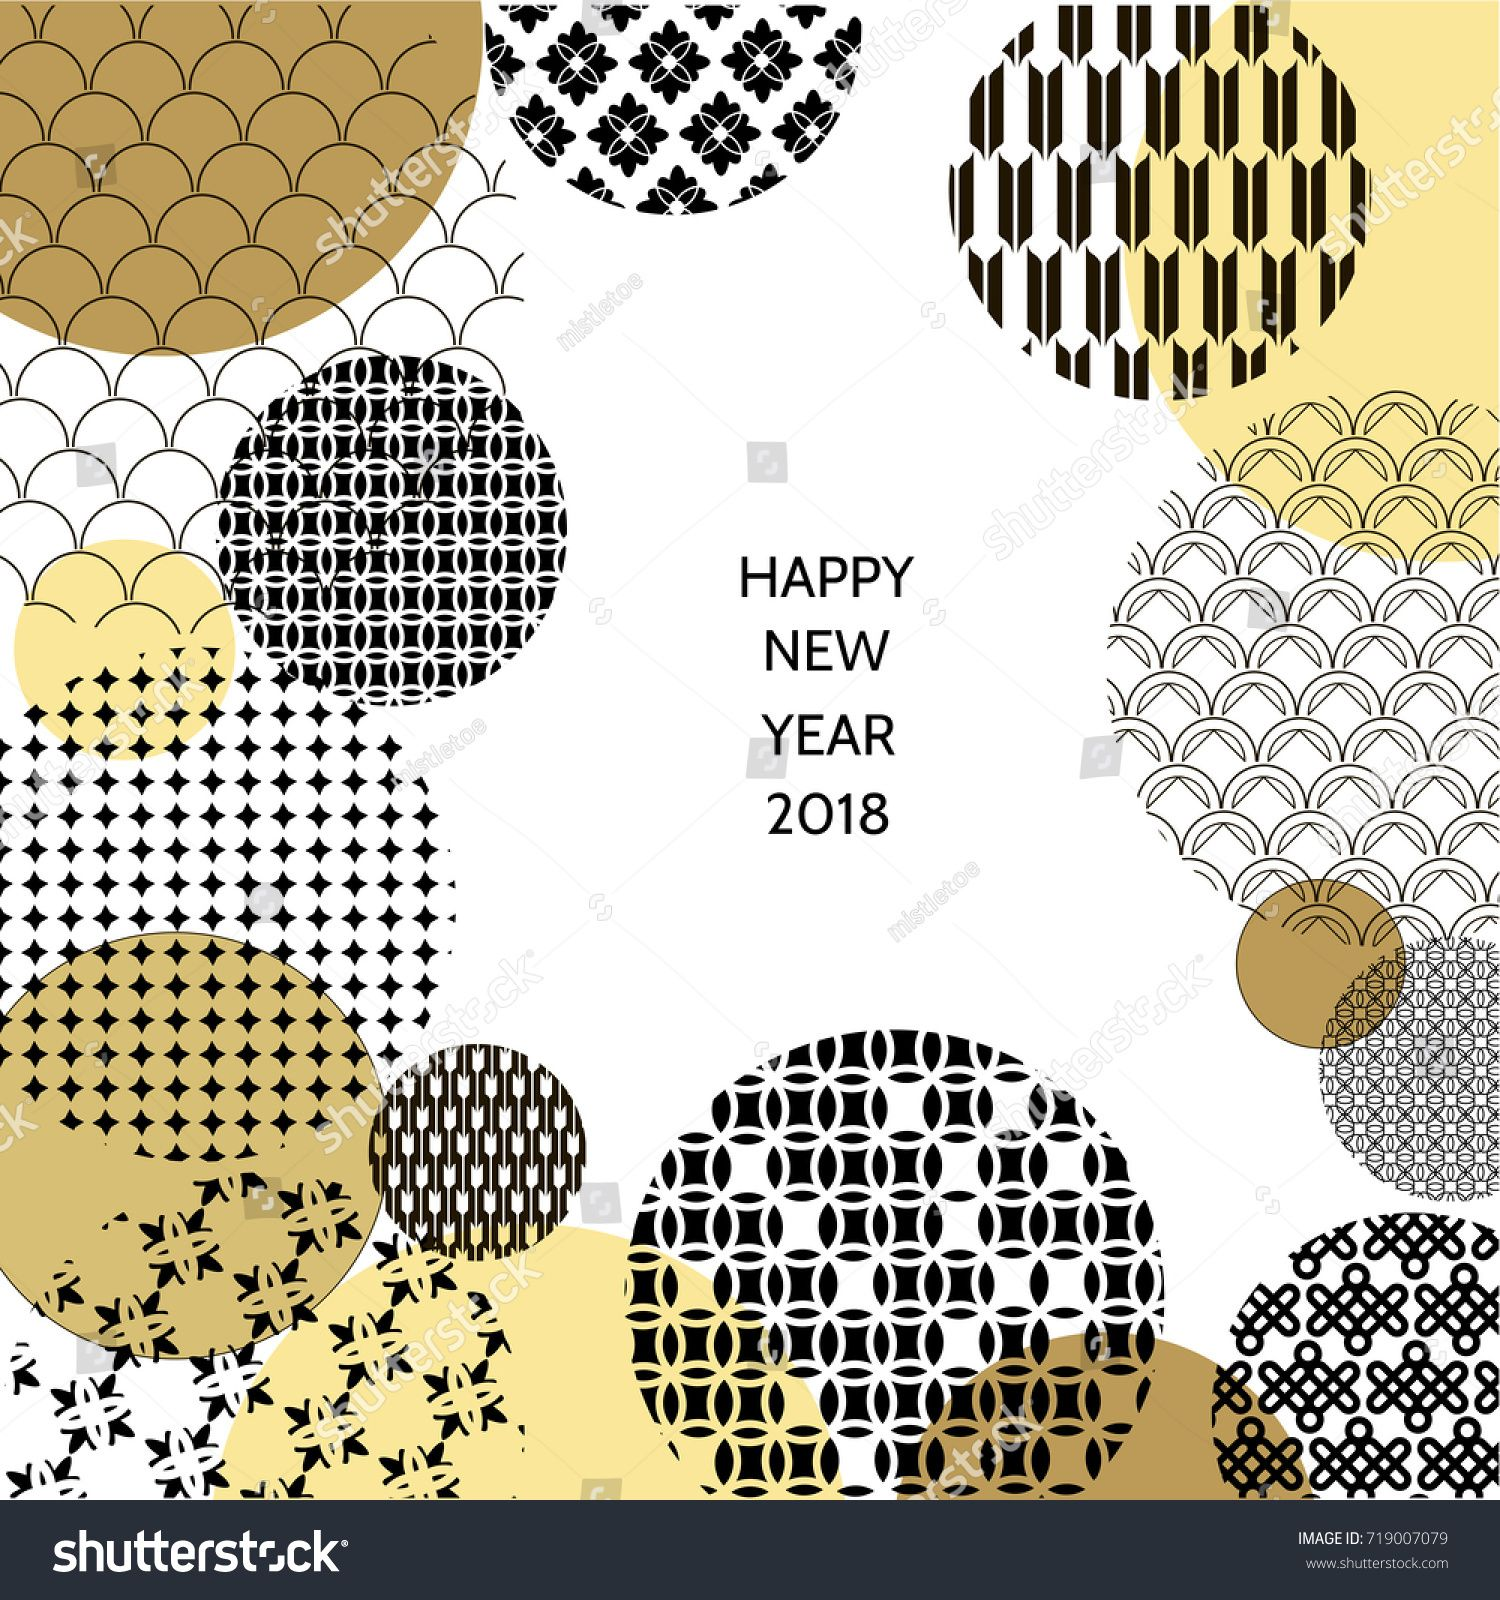 Happy new year 2018. Template greeting card in oriental